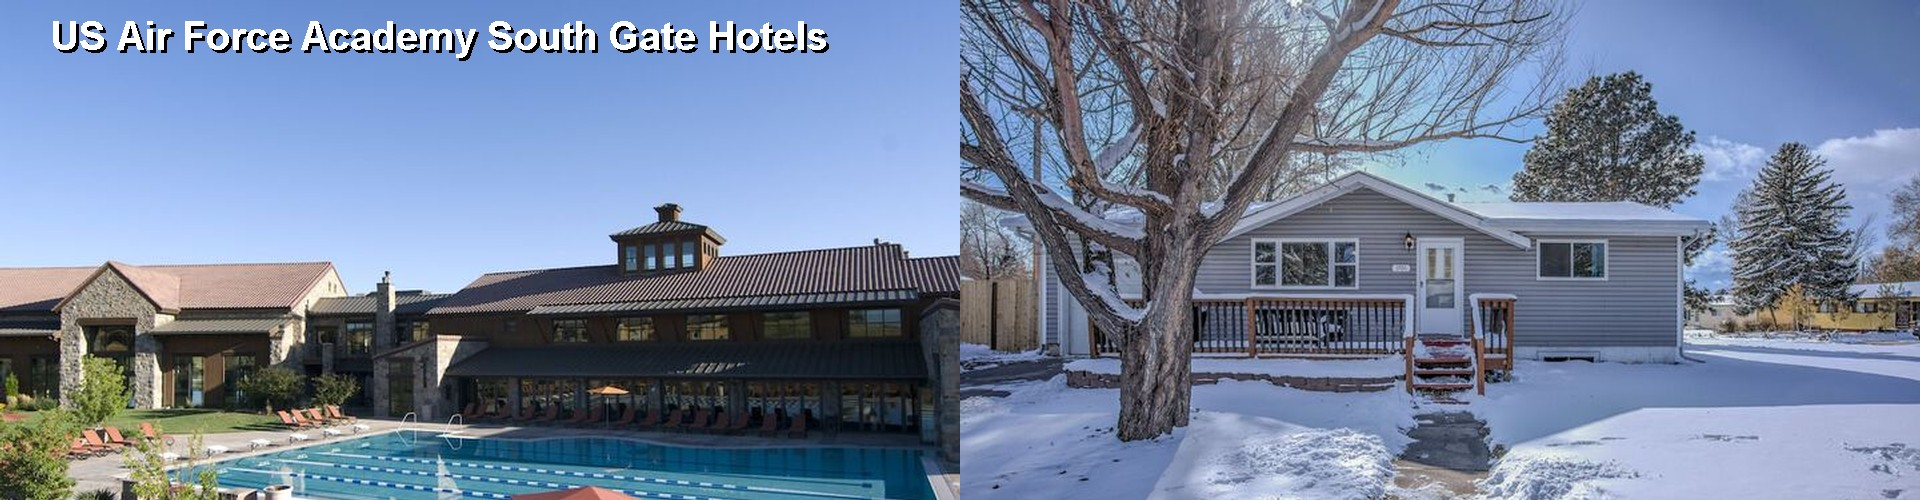 59  Hotels Near Us Air Force Academy South Gate In